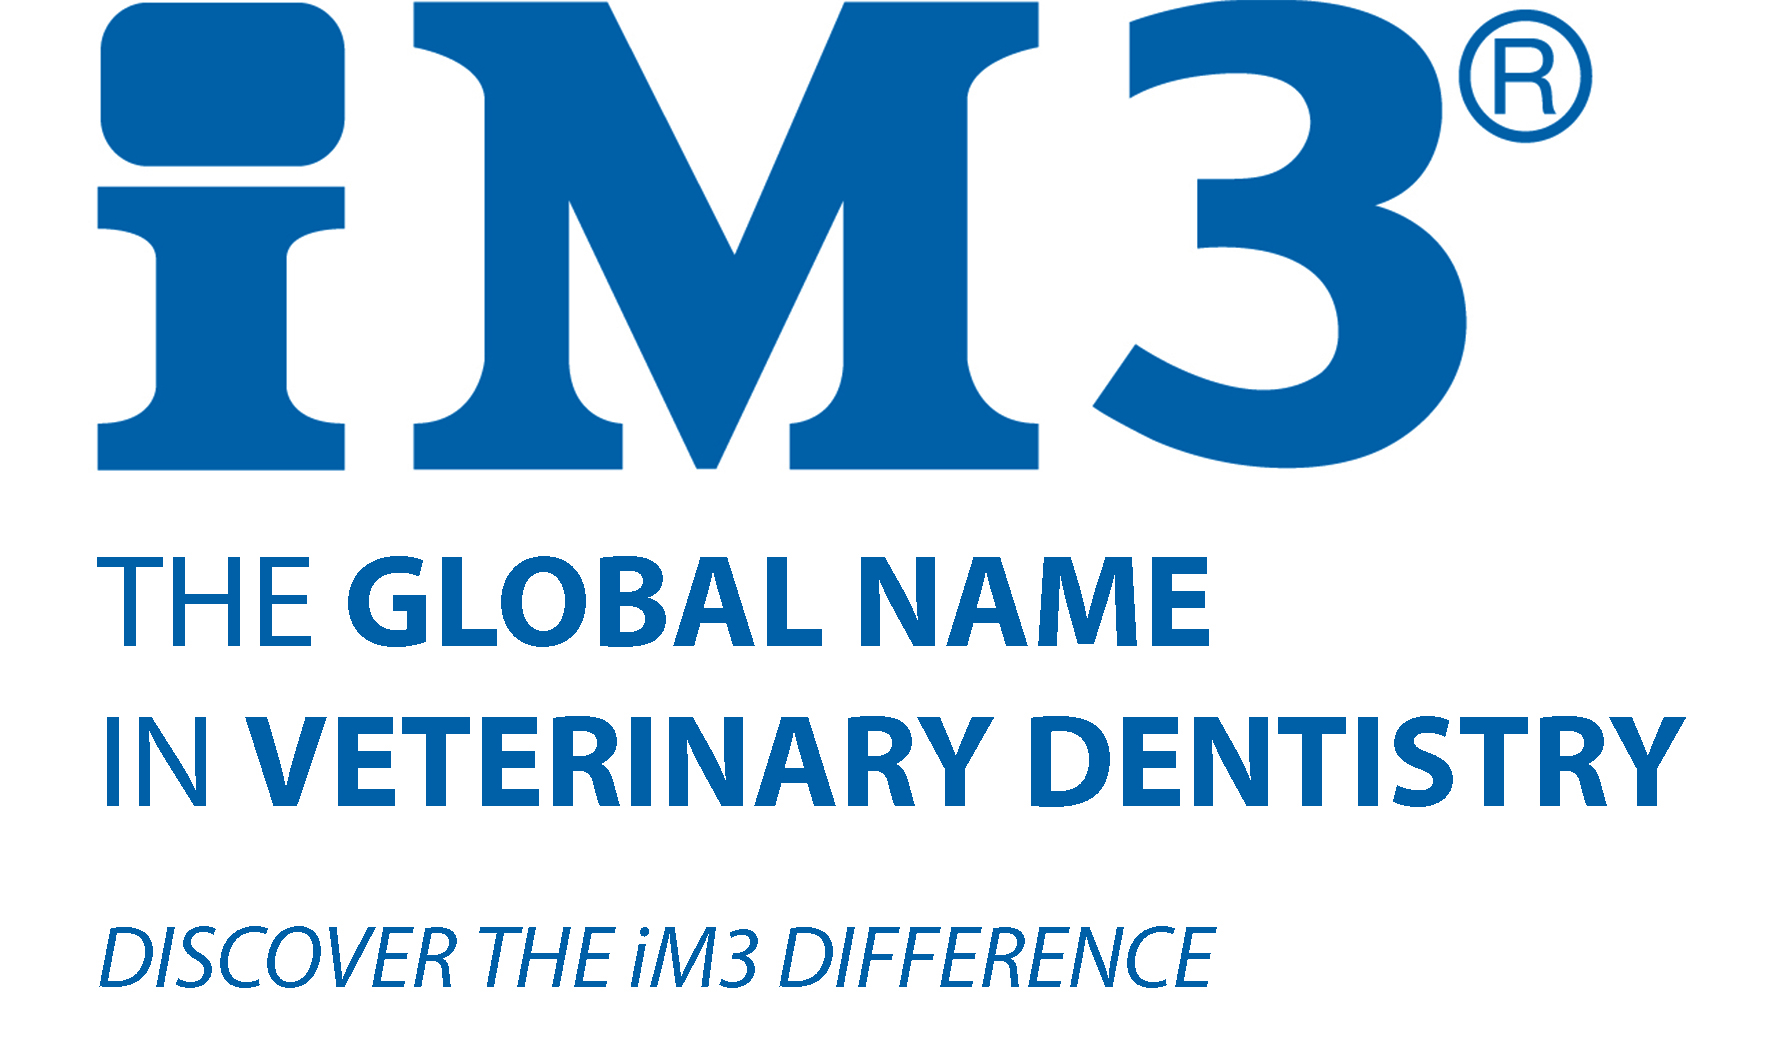 iM3 Dental Ltd